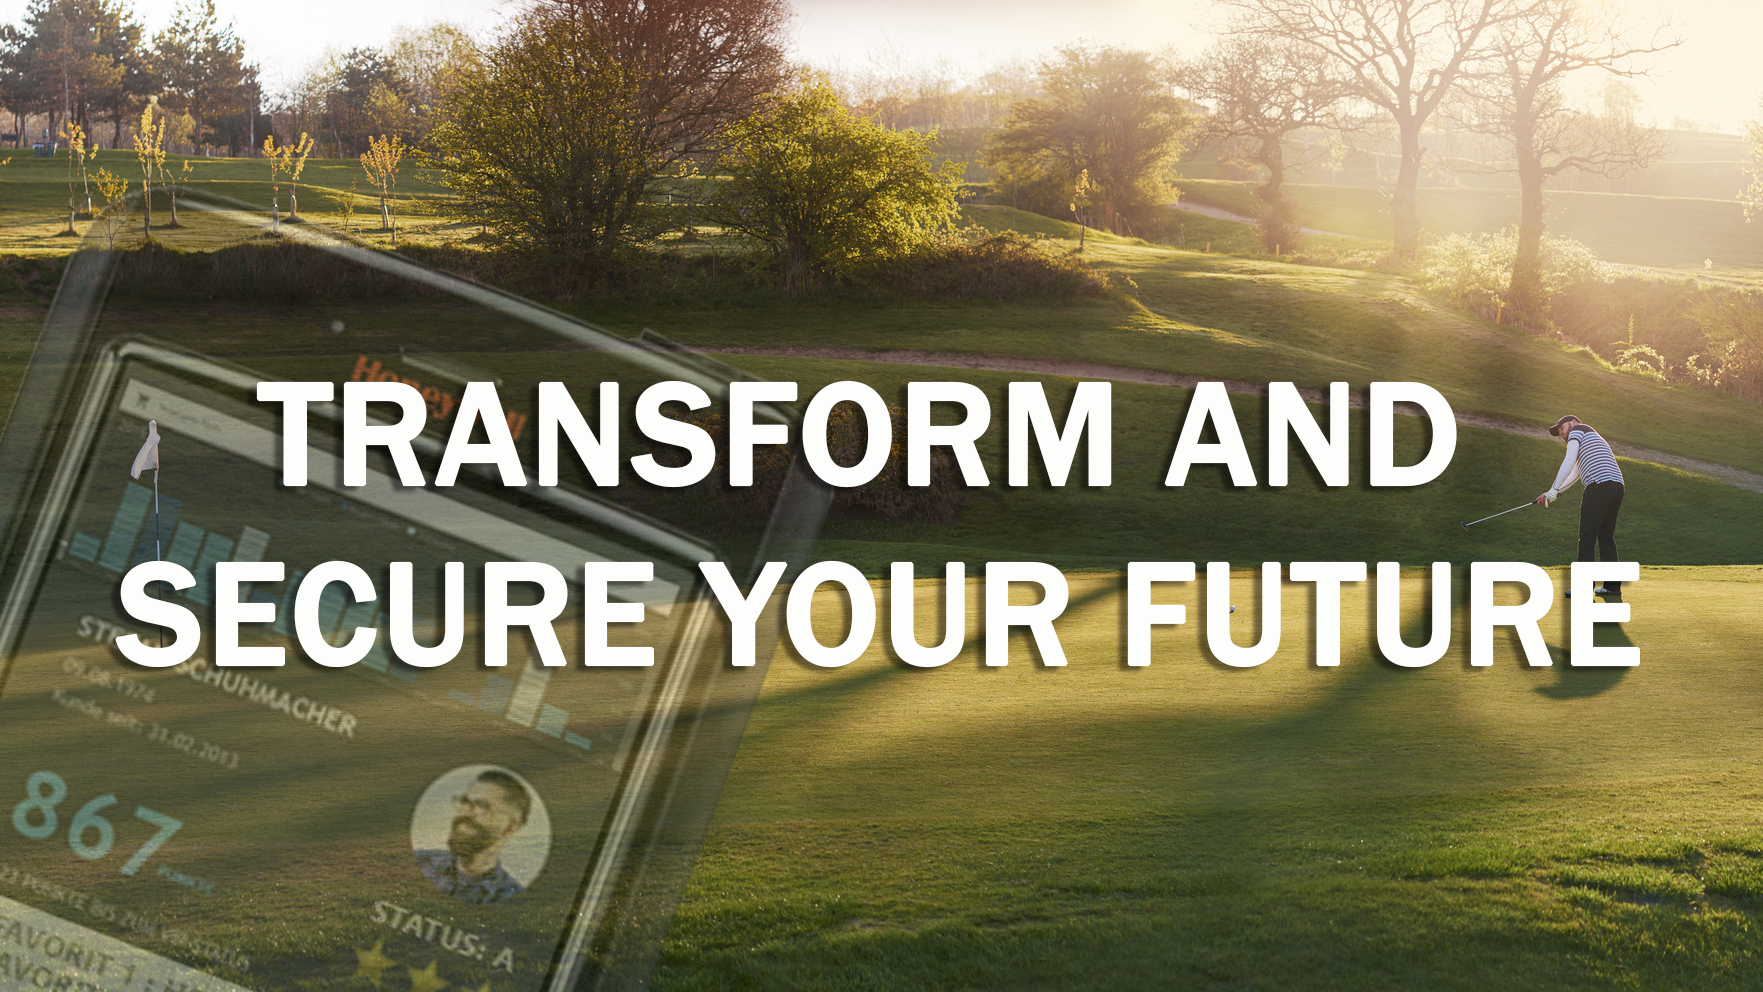 Transfom and secure your future